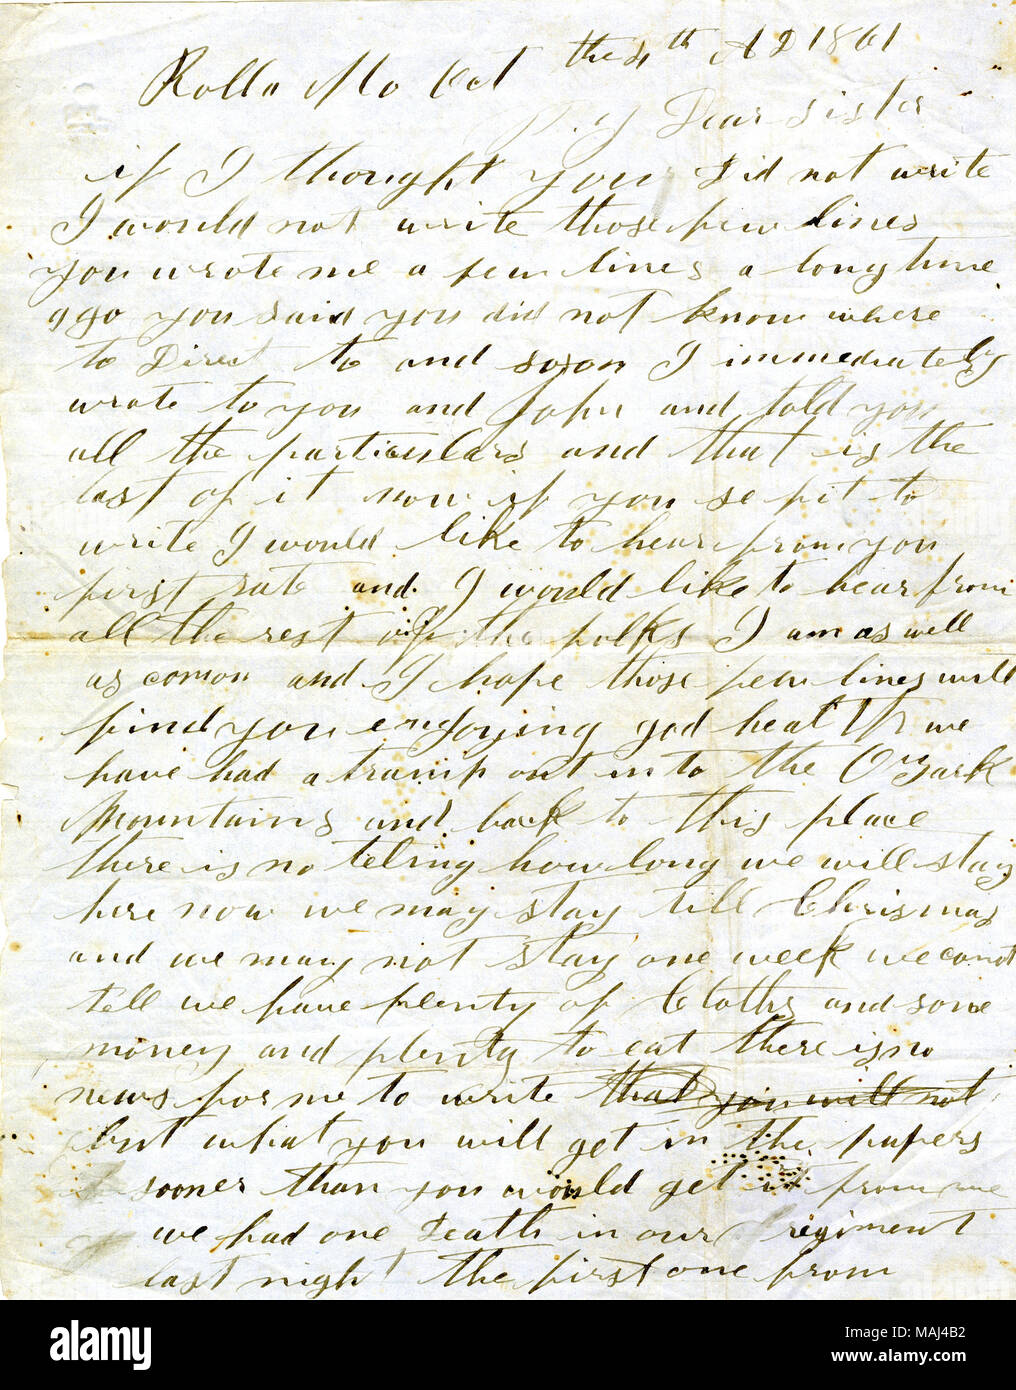 d7dfa81854 Transcription: Rolla Mo Oct the 4th AD 1861 Dear Sister If I thought you  Did not ...